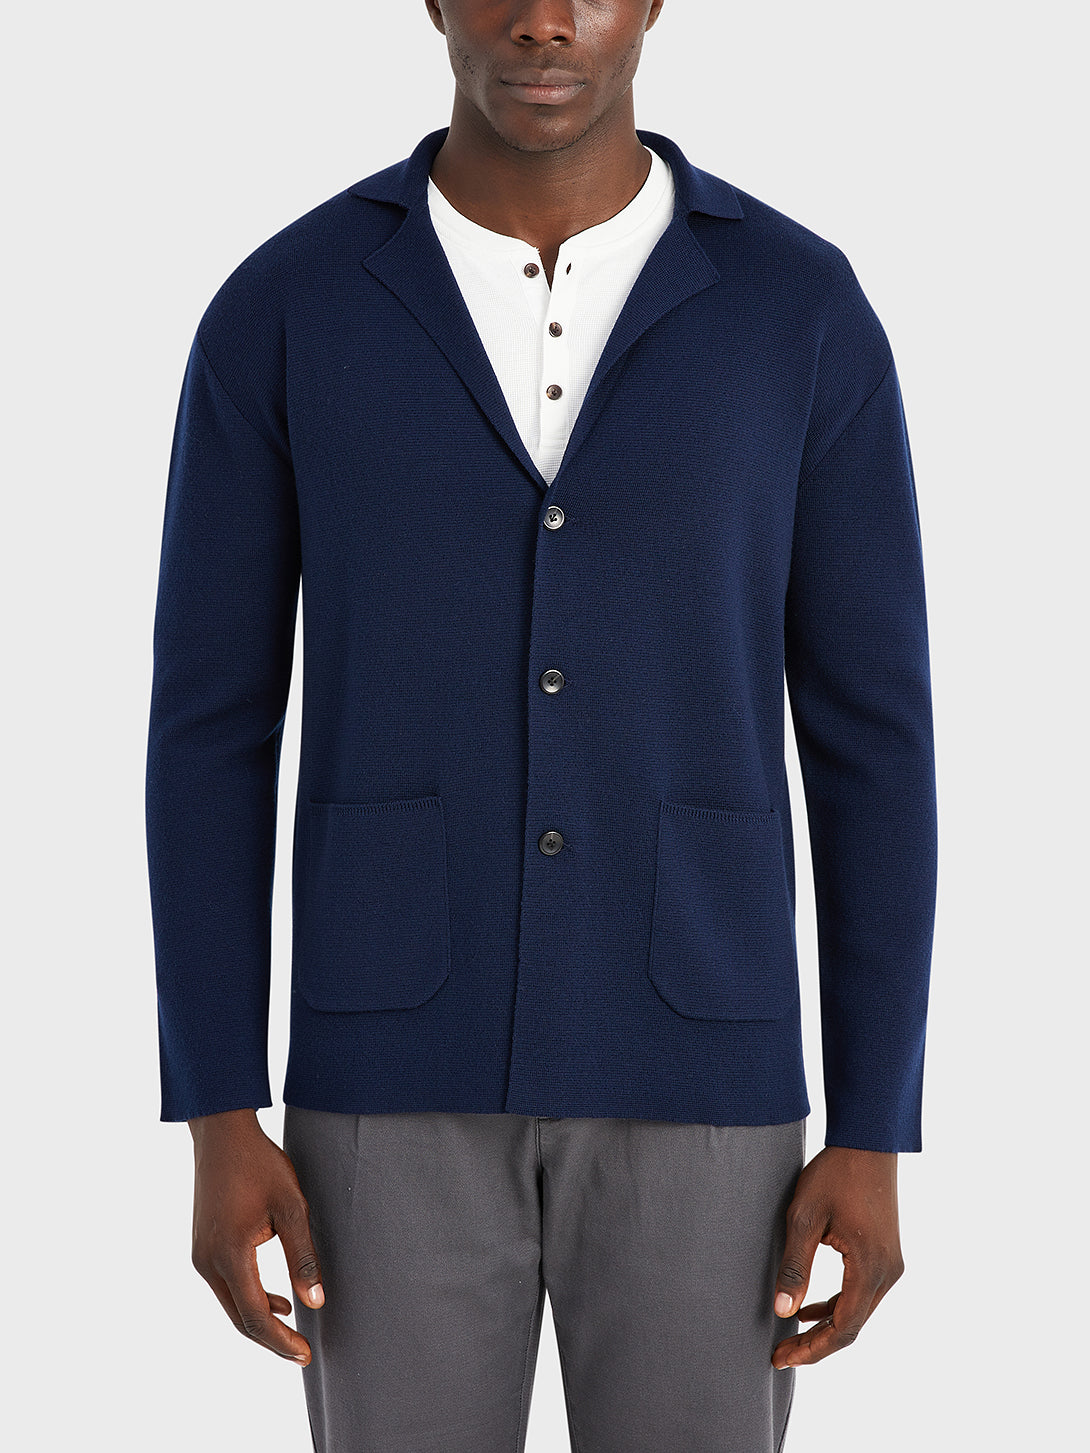 black friday deals ONS Clothing Men's Cole wool cardigan in NAVY